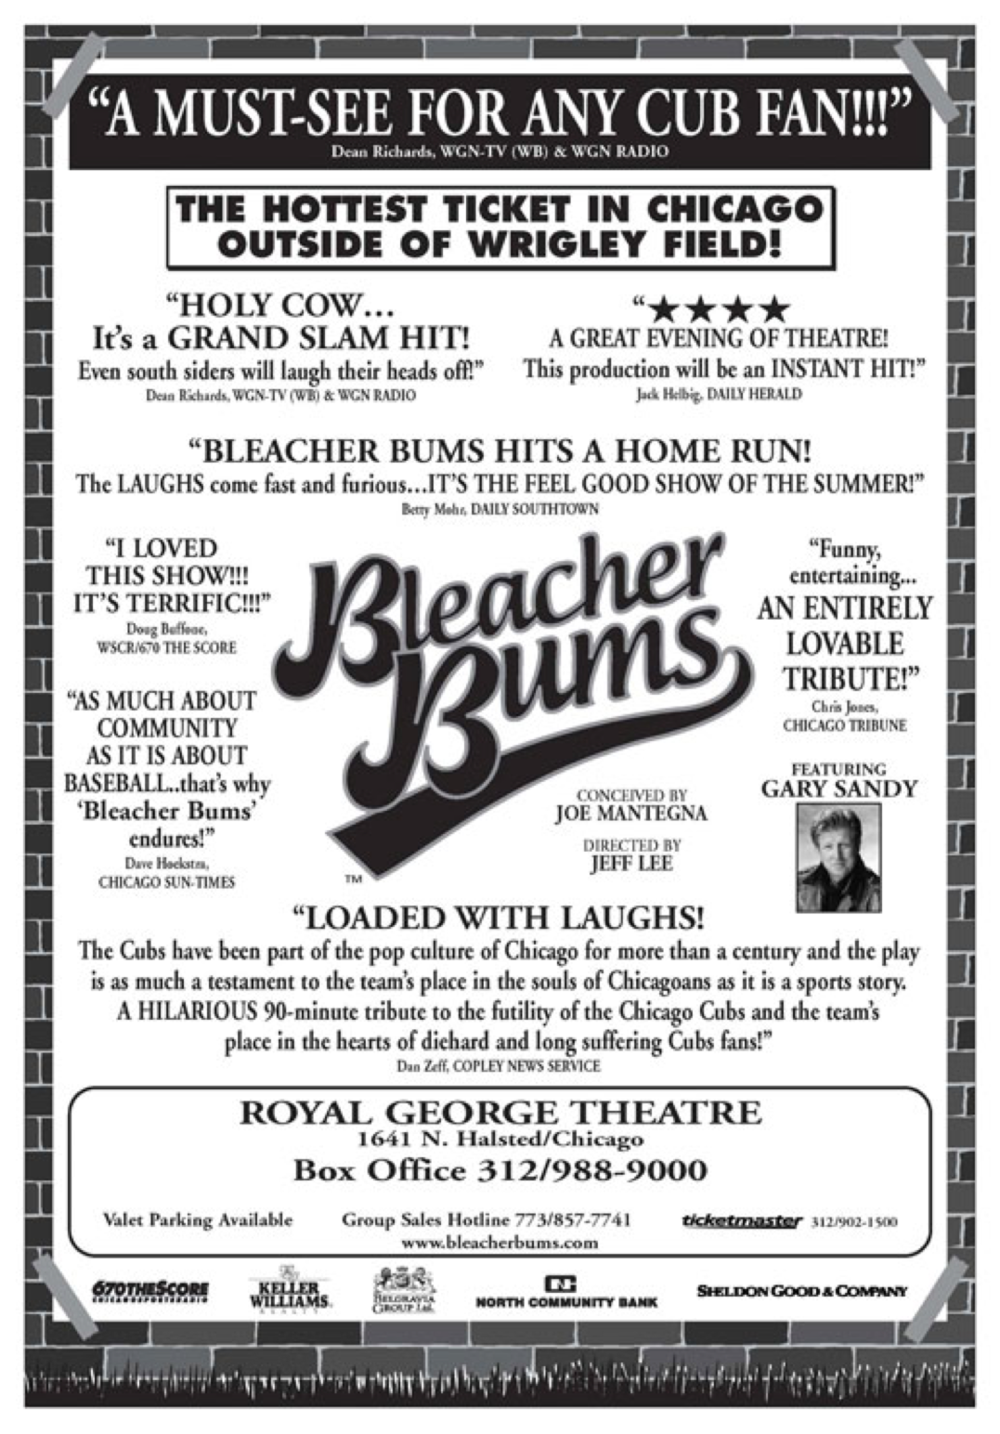 BLEACHER BUMS - the winning baseball comedy about Cubs fans, returned to Chicago at the Royal George Theatre, 1641 N. Halsted, in a special 25th Anniversary Production. The production was updated from the original script, and set, as always, in the right field bleachers at Wrigley Field during a Chicago Cubs / St. Louis Cardinals game.  Conceived by Joe Mantegna and directed by Jeff Lee, BLEACHER BUMS received rave reviews. BLEACHER BUMS was originally written by and has been updated by Roberta Custer, Richard Fire, Dennis Franz, Stuart Gordon, Joe Mantegna, Josephine Paoletti, Dennis Paoli, Carolyn Purdy-Gordon, Michael Saad, Keith Szarabajka and Ian Williams. Some people say it all started in 1908, the last time the Chicago Cubs won the World Series. Others in 1945, the last time the Cubs appeared in a World Series.  But the truth is it started in the heart of every Cubs fan since the beginning of time, and more accurately, in the mind of a young and promising actor (and die-hard Cubs fan) named Joseph Mantegna, a member of The Organic Theater Company, one of Chicago's most prolific acting troupes that in the late 1970's turned out hit after hit such as; Sexual Perversity in Chicago by David Mamet,  The Wonderful Ice Cream Suit by Ray Bradbury, Warp by Stuart Gordon and Bury St. Edmund, and BLEACHER BUMS, the biggest hit of them all! BLEACHER BUMS first opened in 1977 under the direction of Stuart Gordon and ran for an unprecedented two years to sold-out audiences, winning the hearts of Chicago theater goers, baseball fans, theater critics and the city of Chicago before embarking on one of the most successful road trips in history, with winning performances across the country including a six-month run in New York and an unprecedented 13-year run in Los Angeles. BLEACHER BUMS has made its mark on the American theater scene as one of the most often performed shows. Additionally, BLEACHER BUMS garnered an Emmy Award in 1980 for the WTTW / Chicago television production of the stage play, which starred Joe Mantegna and Dennis Franz among others.  In 2001 it was made into a made-for-television movie on Show time, staring Matt Craven (The Life of David Gale), Brad Garrett (Everybody Loves Raymond), Wayne Knight (Seinfeld), Peter Riegert (Crossing Delancy), Hal Sparks (Dude, Where's My Car?) and Charles Durning. (Please click here to learn more about the BLEACHER BUMS 25th Anniversary Company).